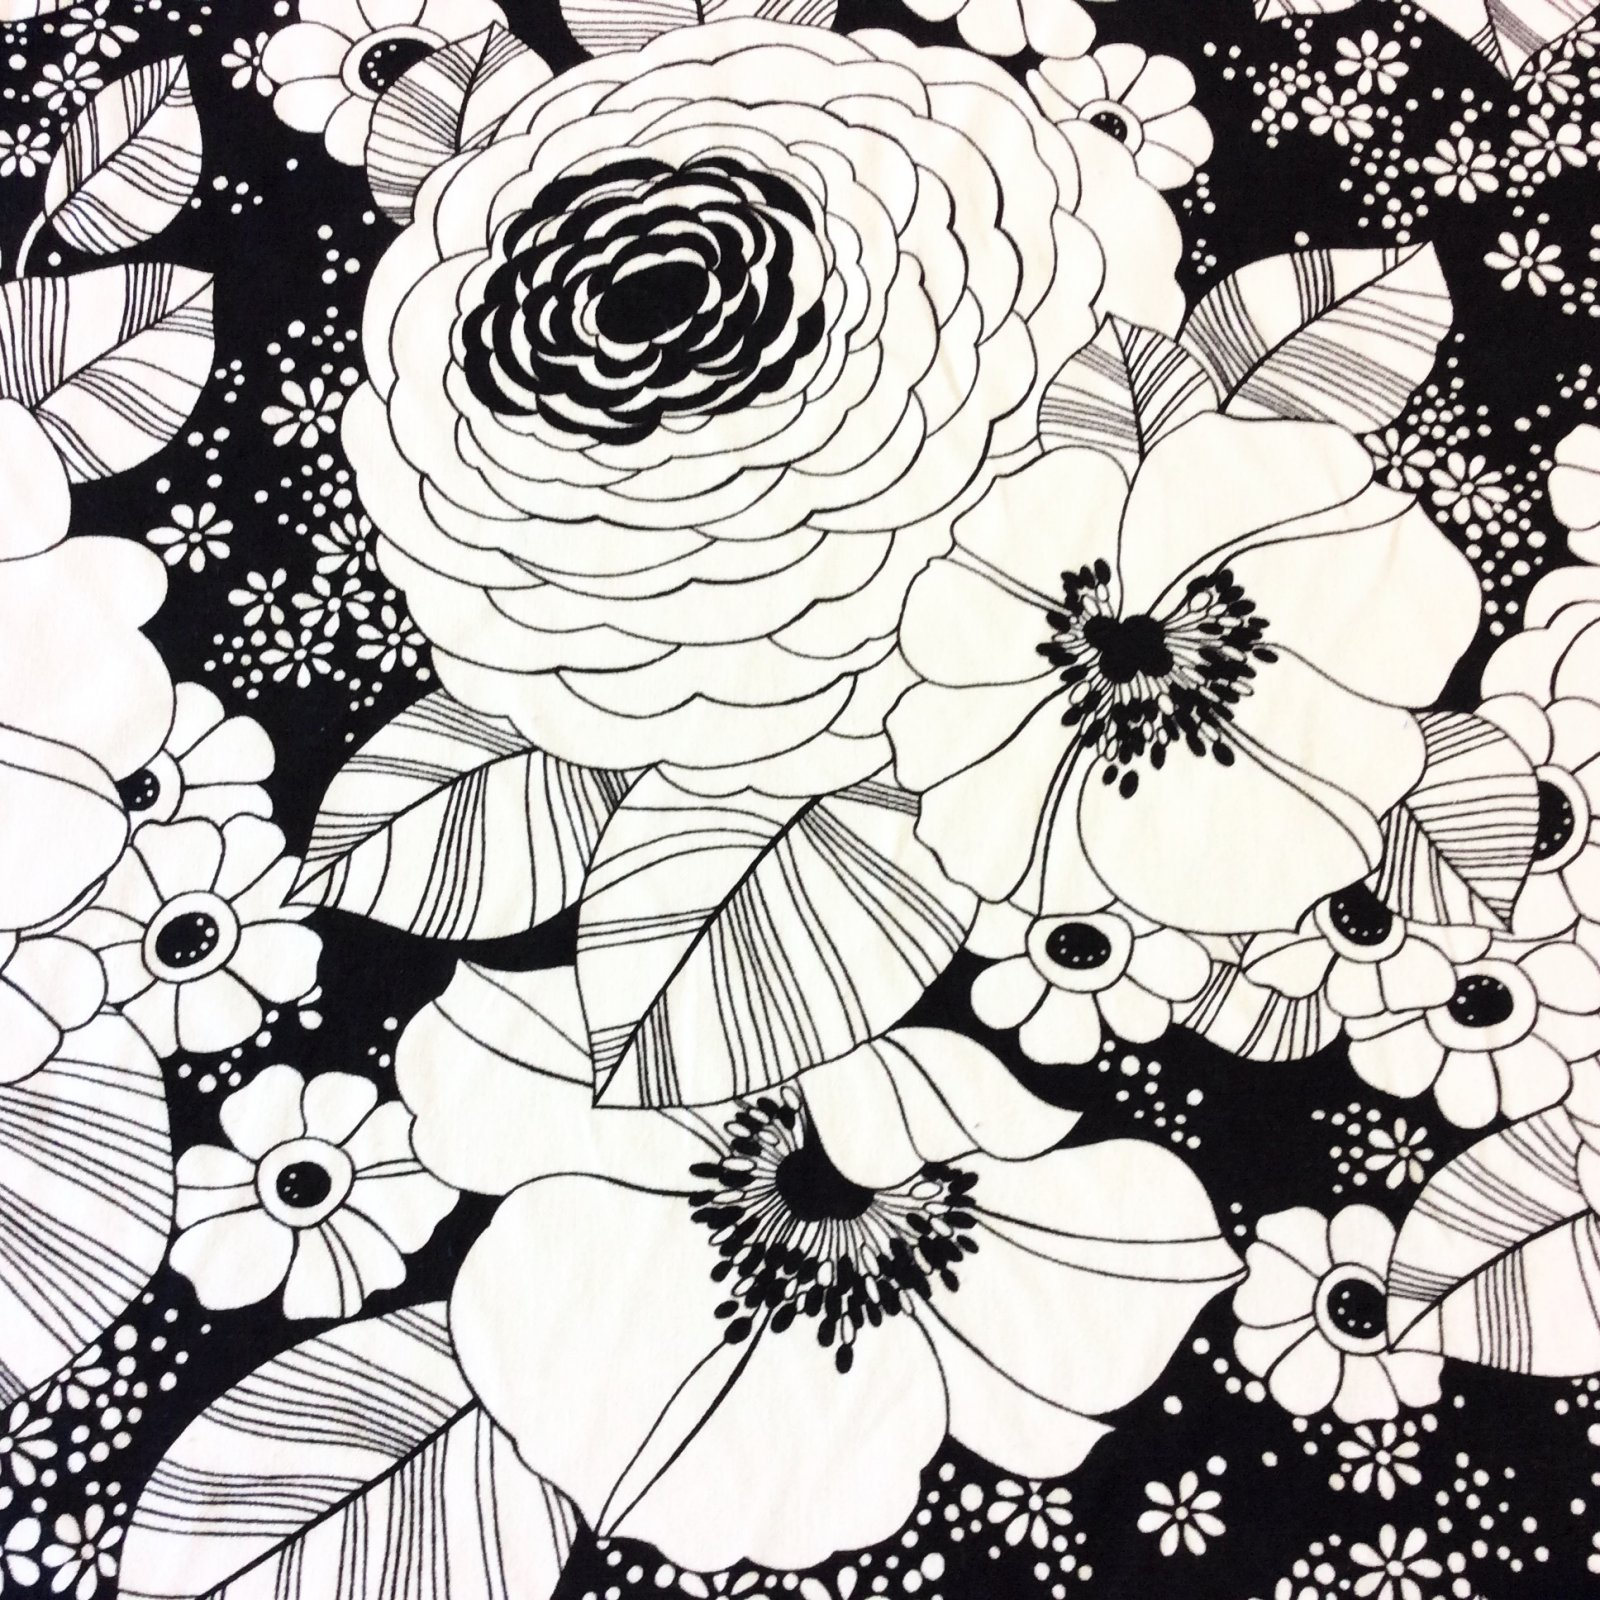 Floral Mod Black & White Floral Flower Garden Cotton Drapery Home Decor Fabric LHD117